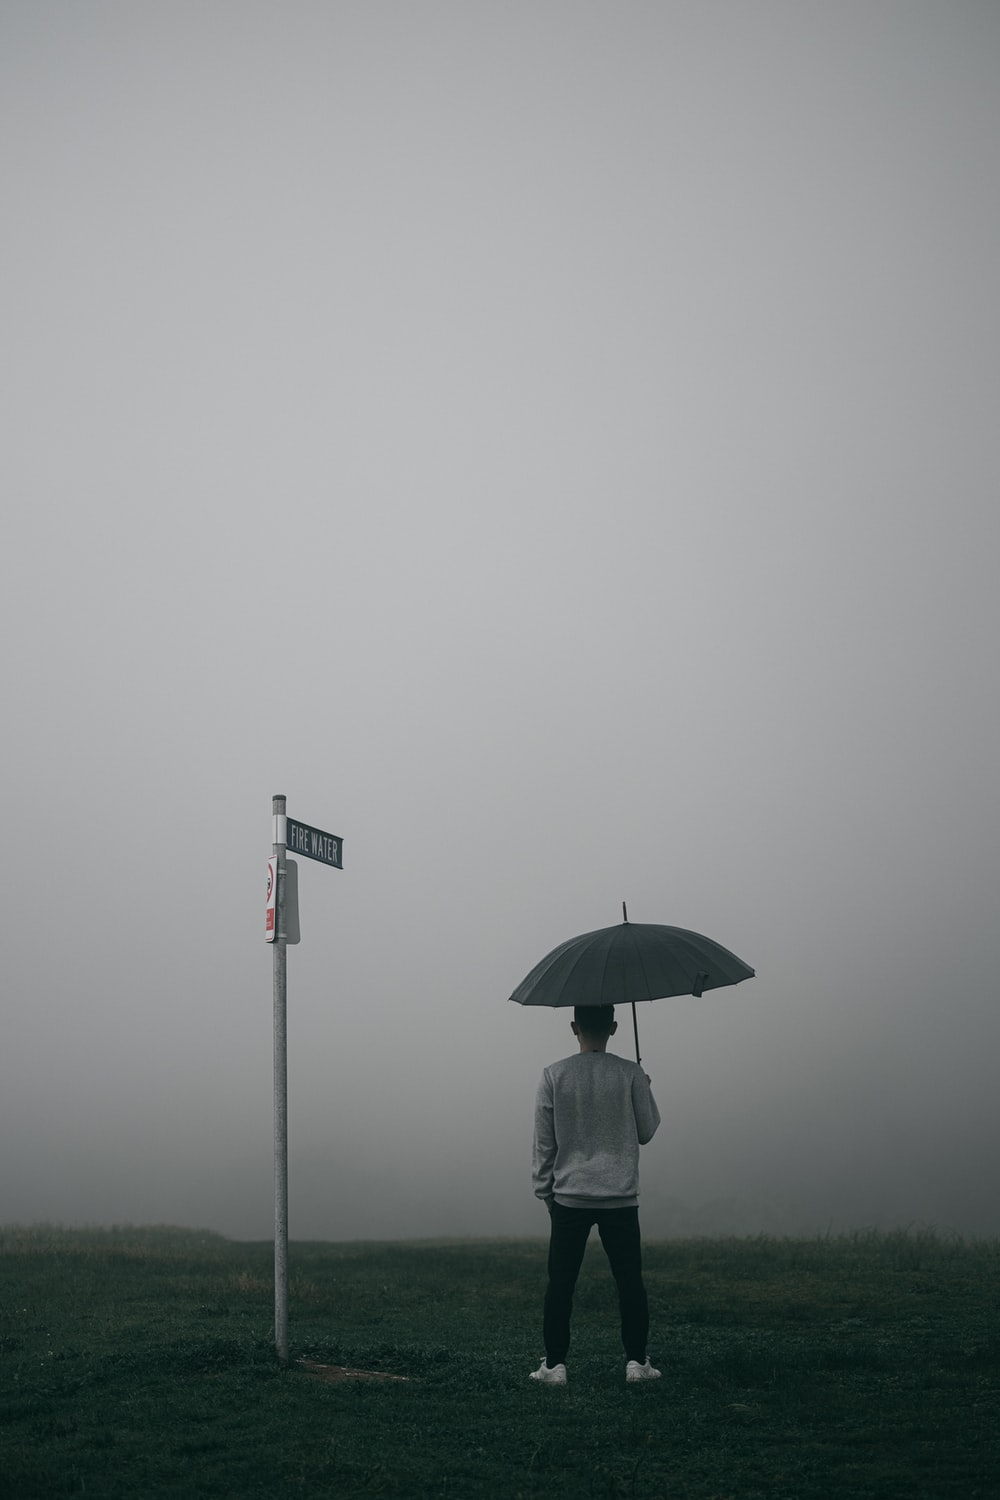 person in white jacket and gray pants holding umbrella standing on foggy field